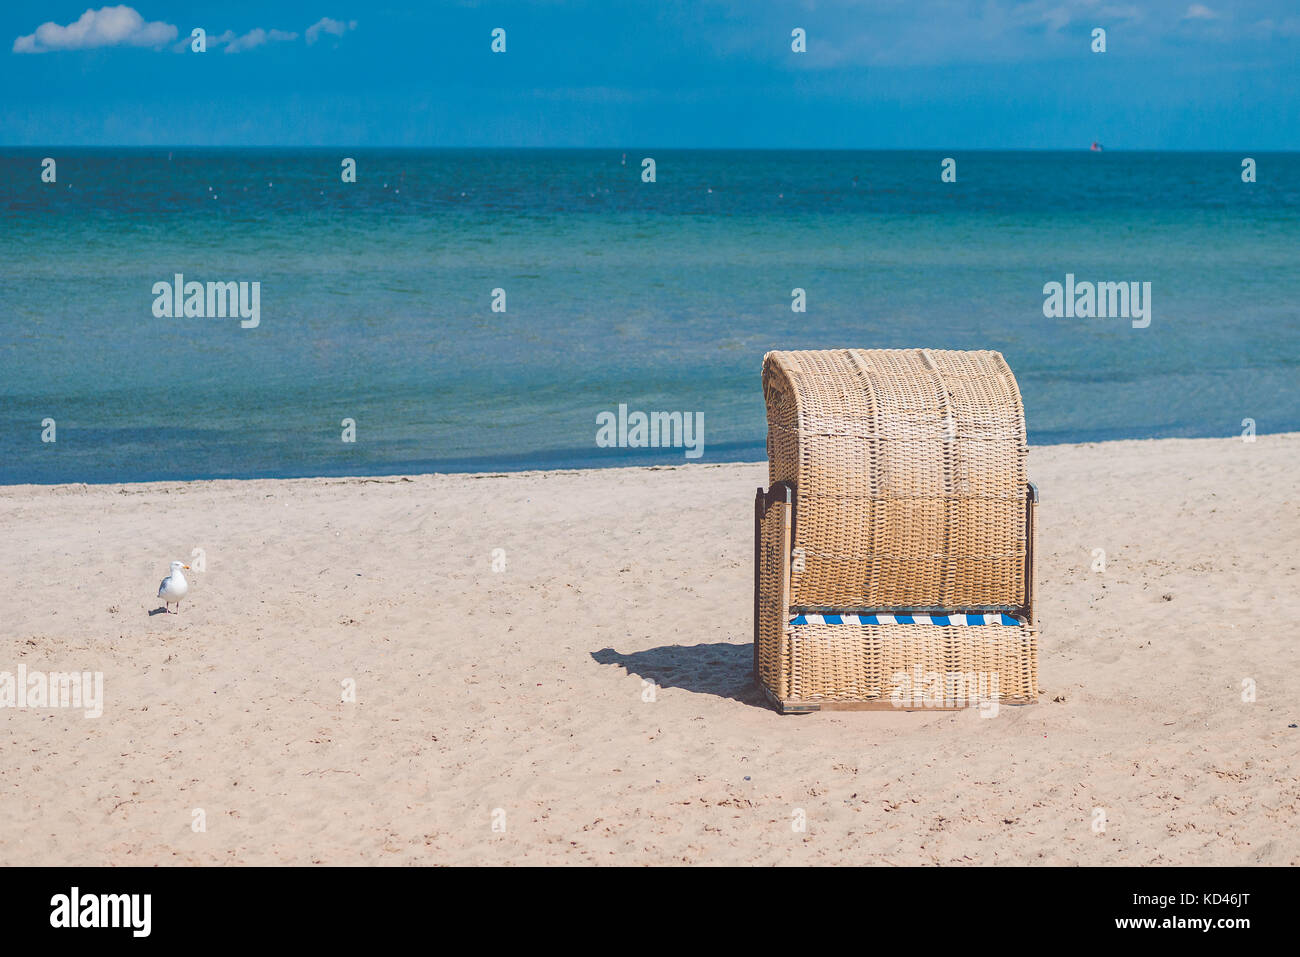 One roofed chair on empty sandy beach in Travemunde. One lonely seagull beside. Germany - Stock Image